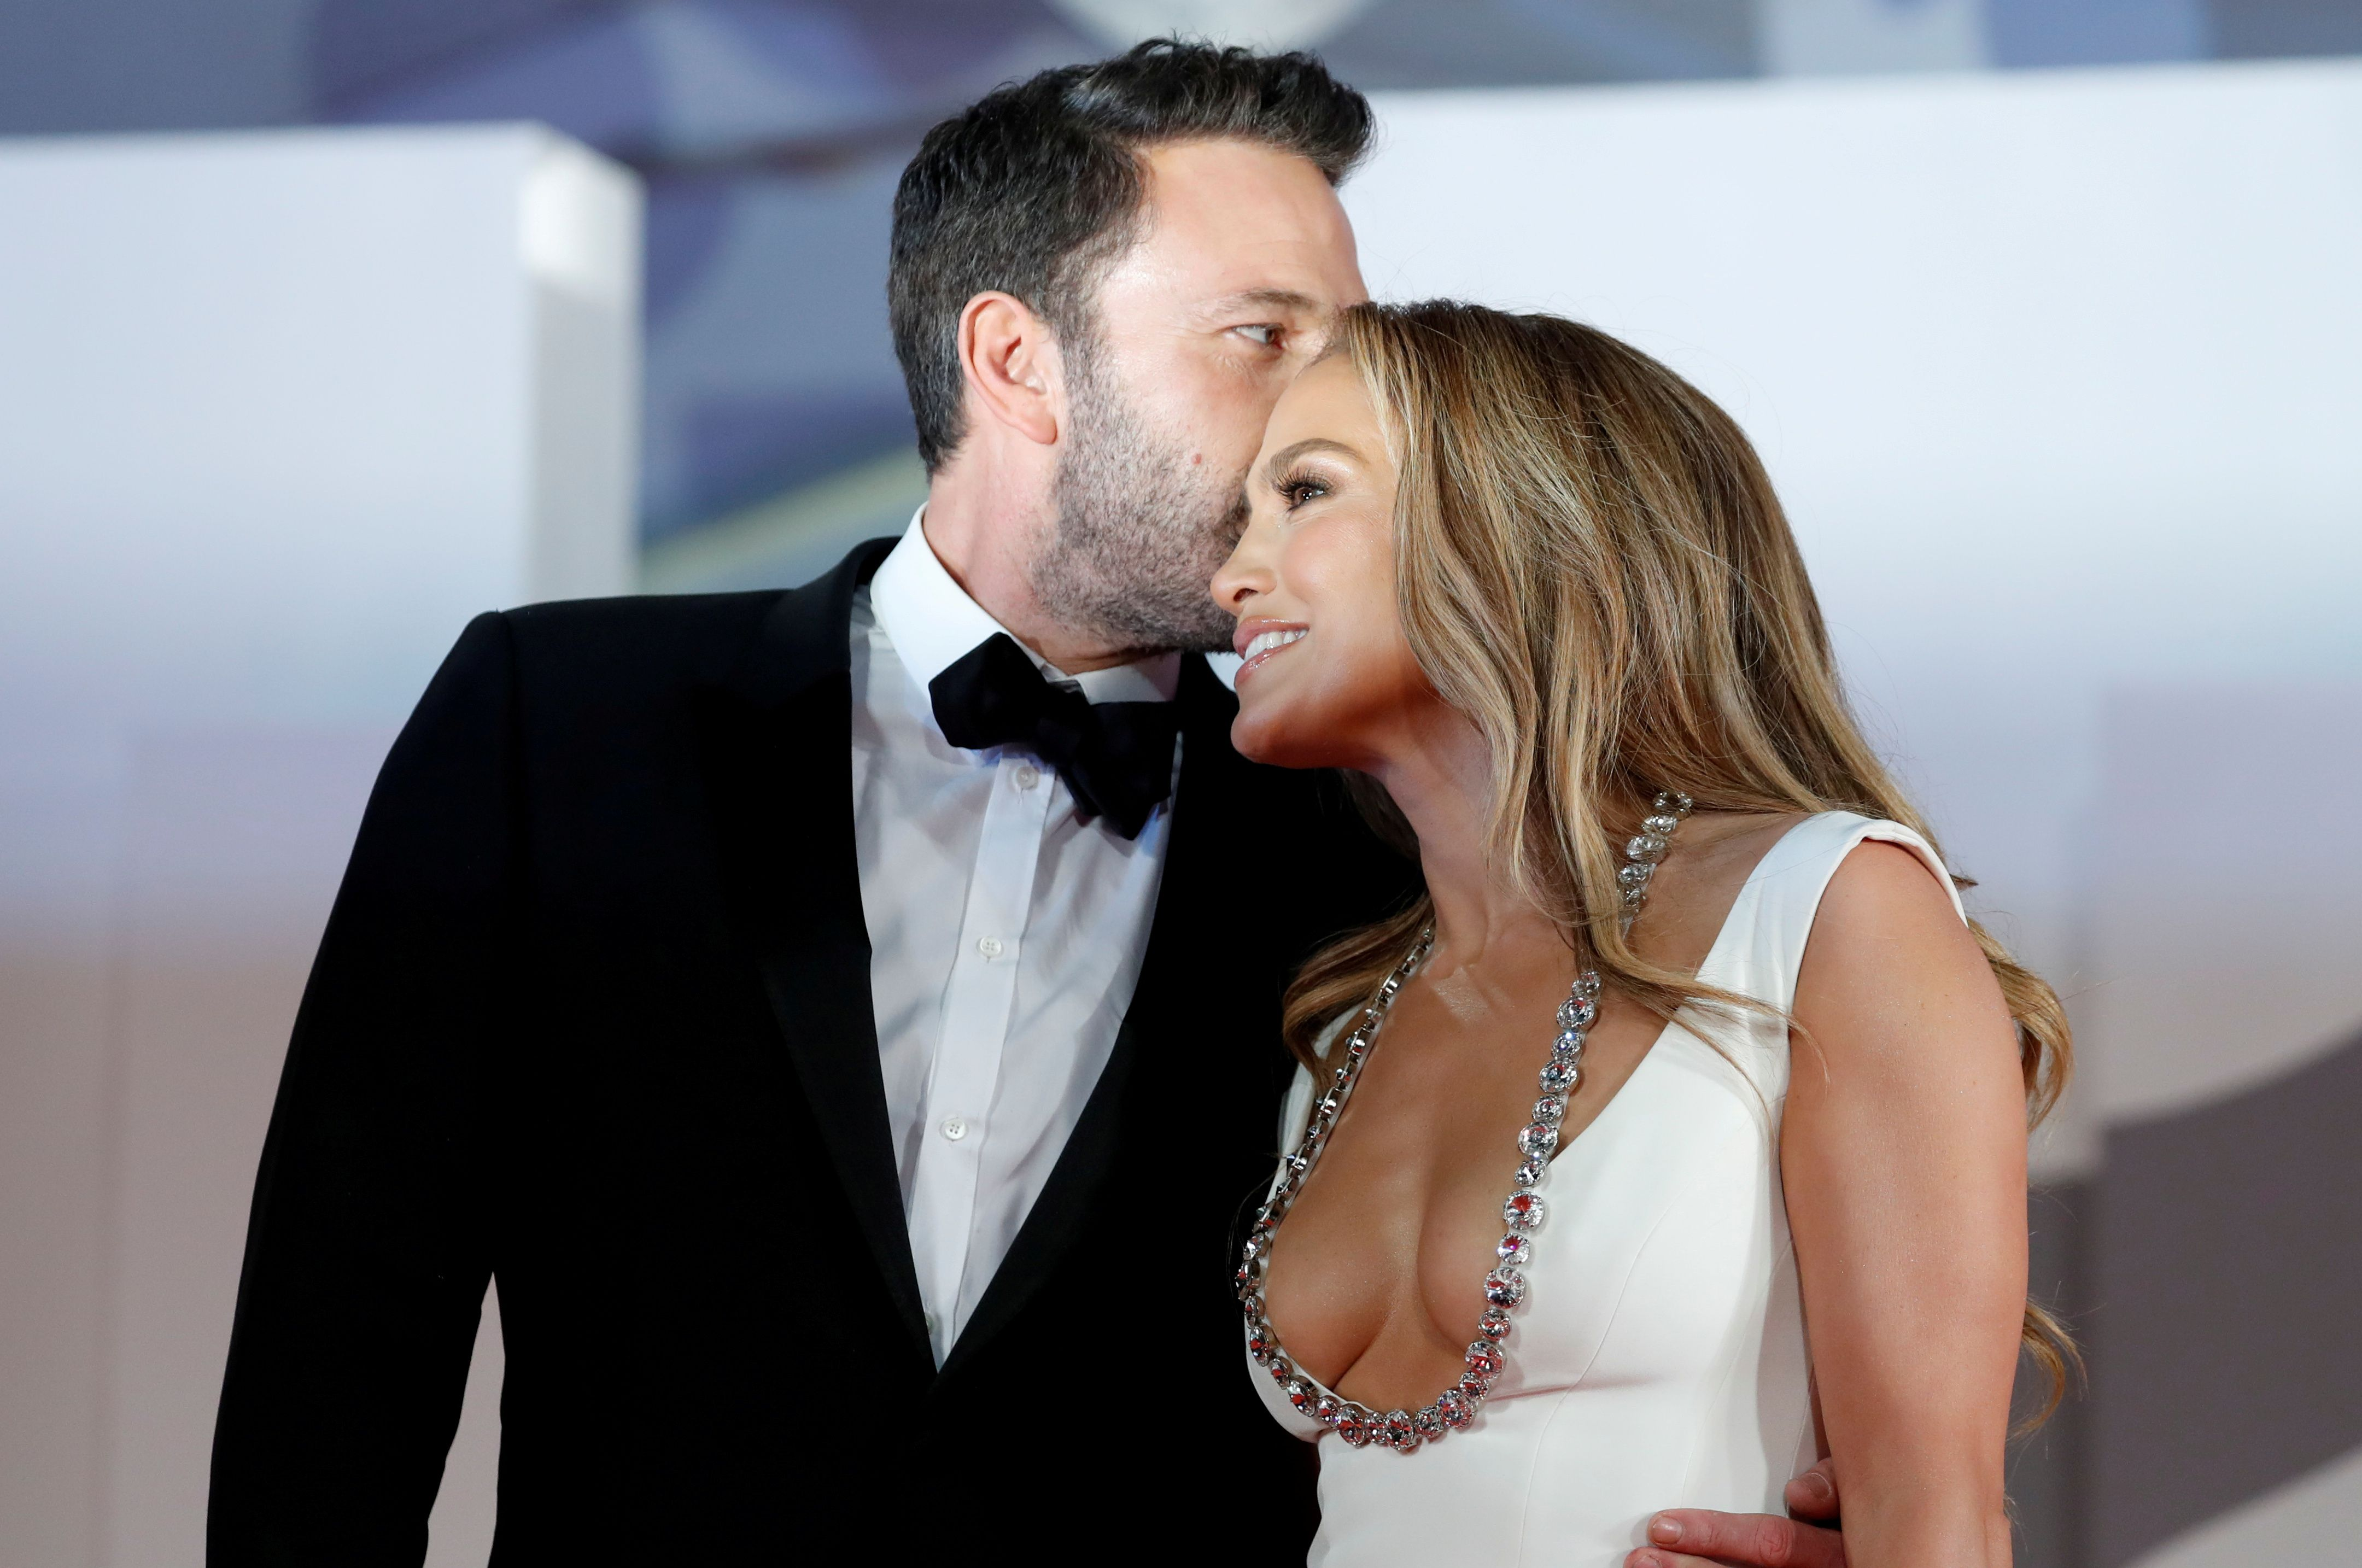 """The 78th Venice Film Festival - Premiere screening of the film """"The Last Duel"""" - Out of competition - Venice, Italy, September 10, 2021. Jennifer Lopez and Ben Affleck pose. REUTERS/Yara Nardi TPX IMAGES OF THE DAY"""